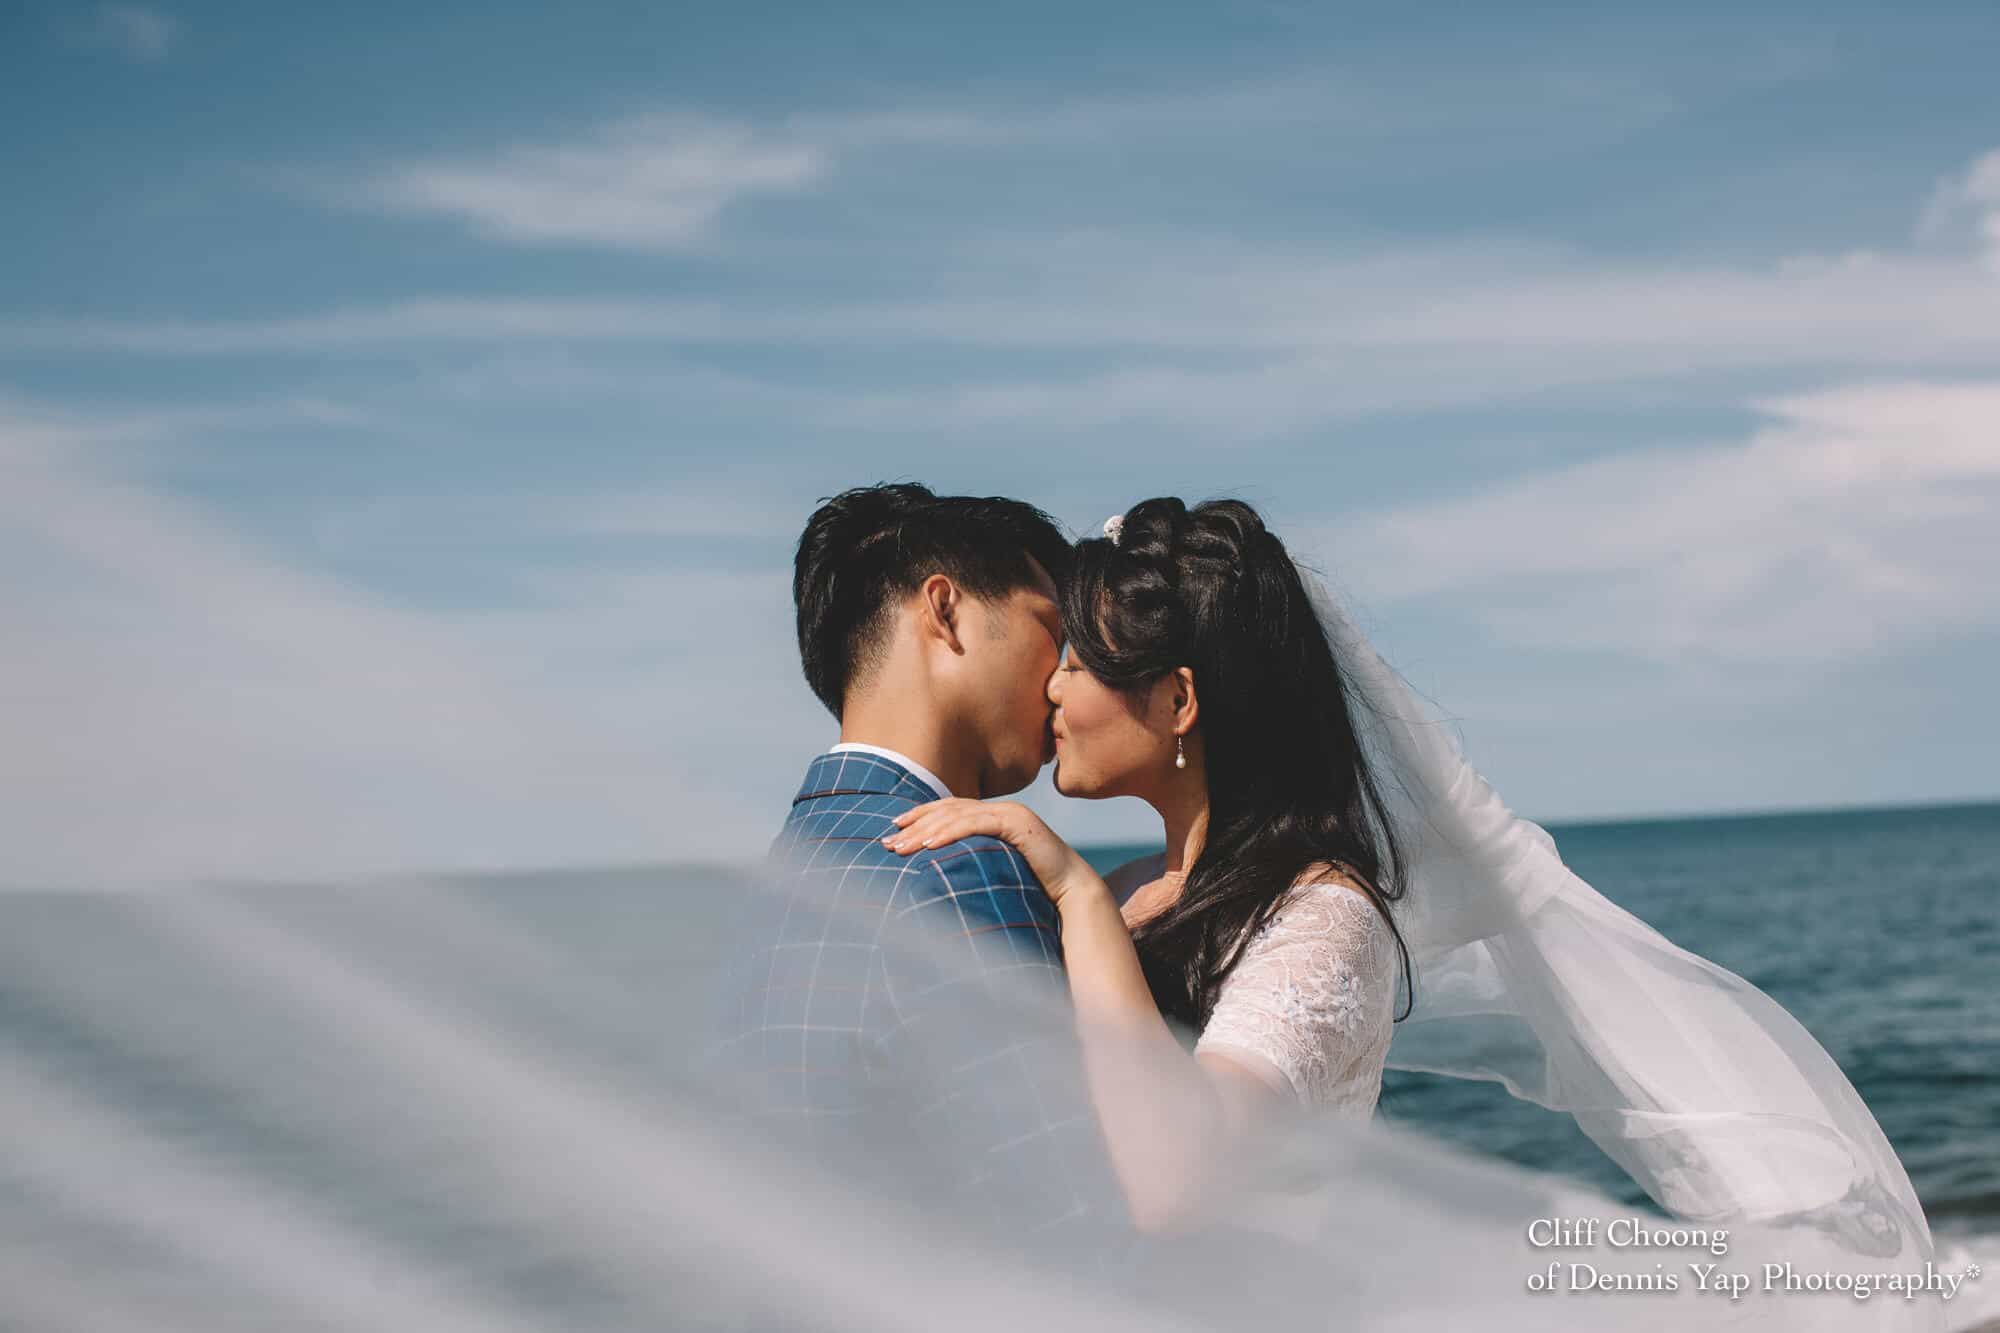 Malaysia Best Prewedding Destination Kota Kinabalu Engagement Photography Cliff Choong wedding photographer nature beach cloud blue sky kiss couple hug